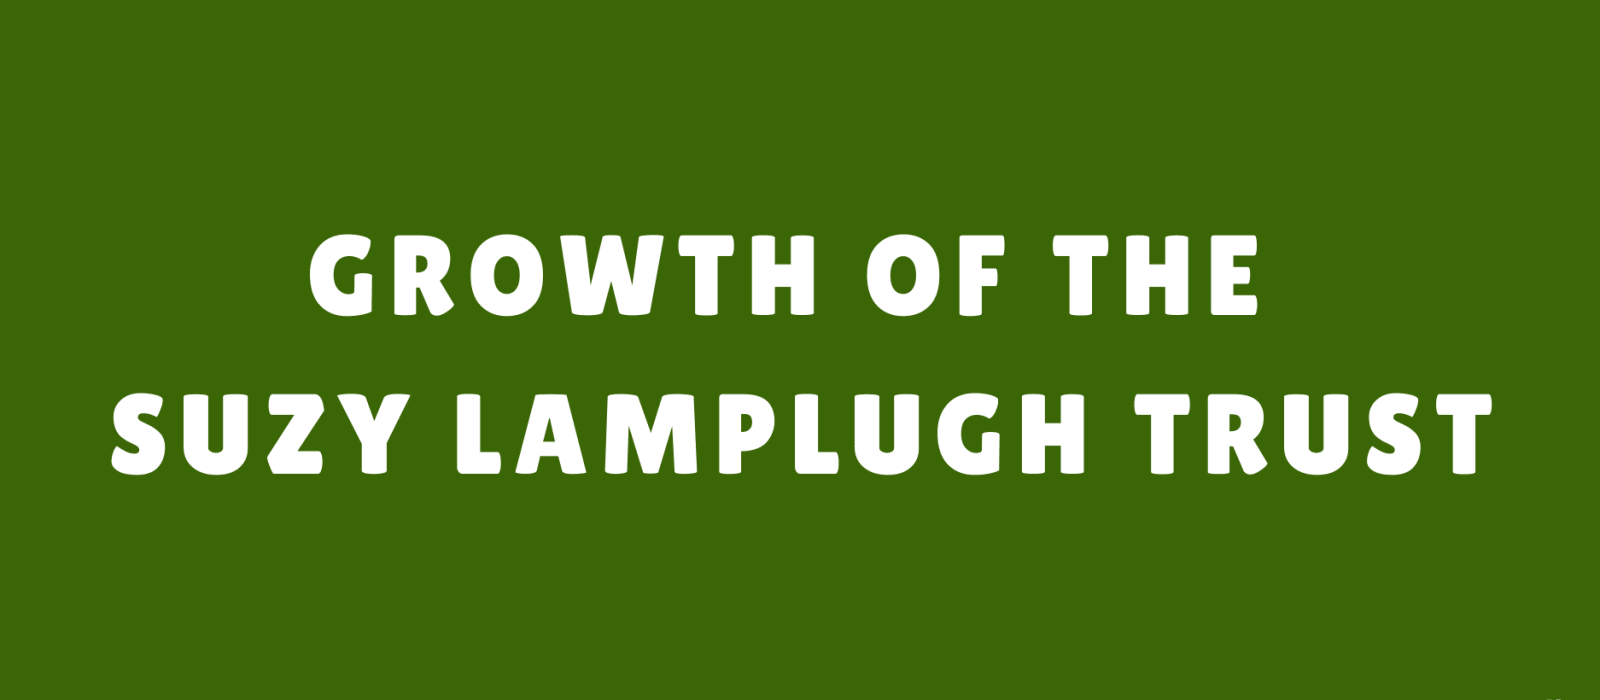 Join the growing team at the Suzy Lamplugh Trust